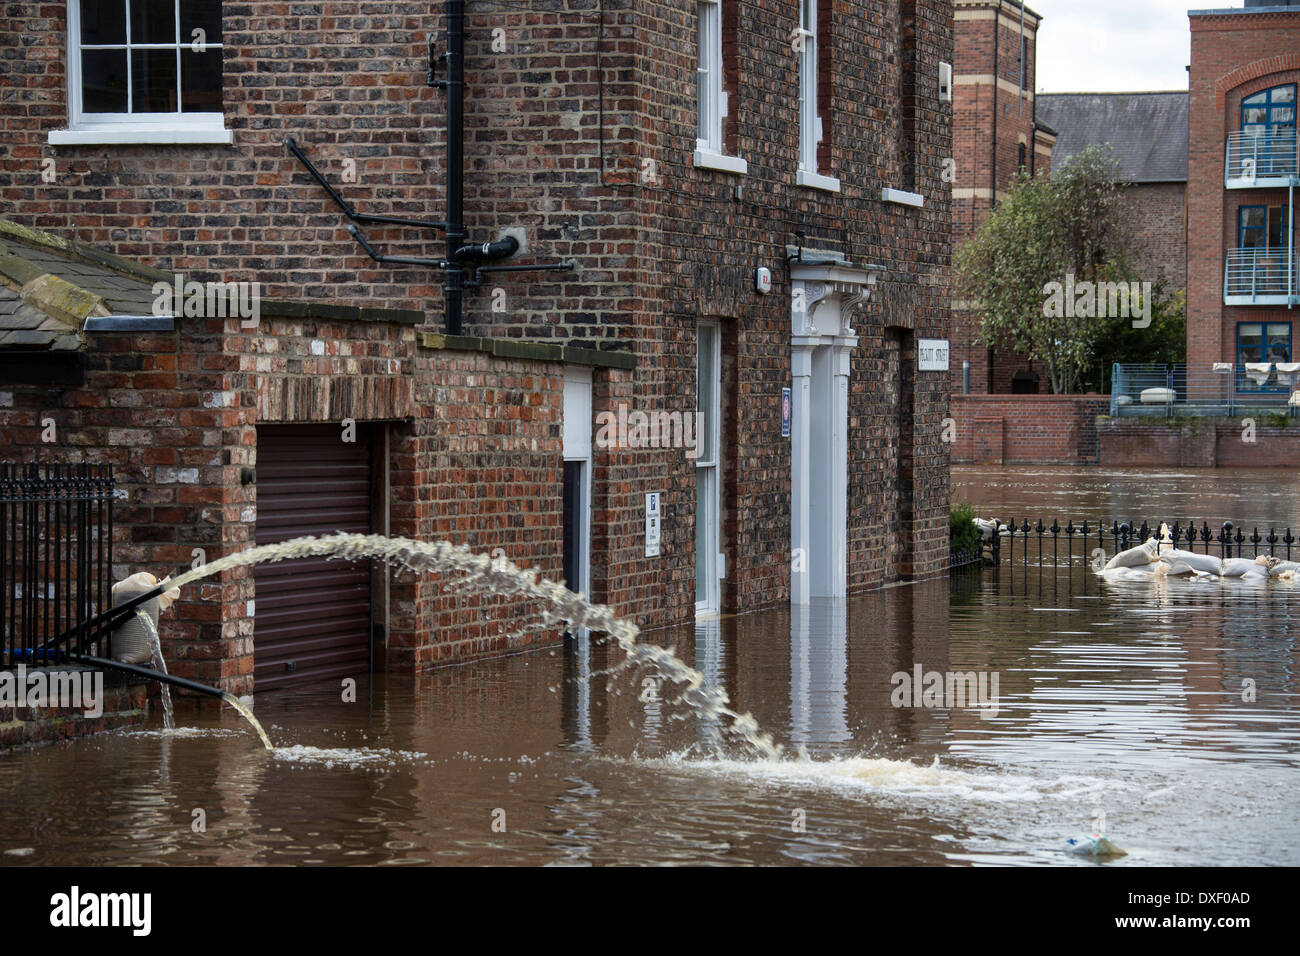 The River Ouse floods the streets of central York in the United Kingdom. September 2012. Stock Photo